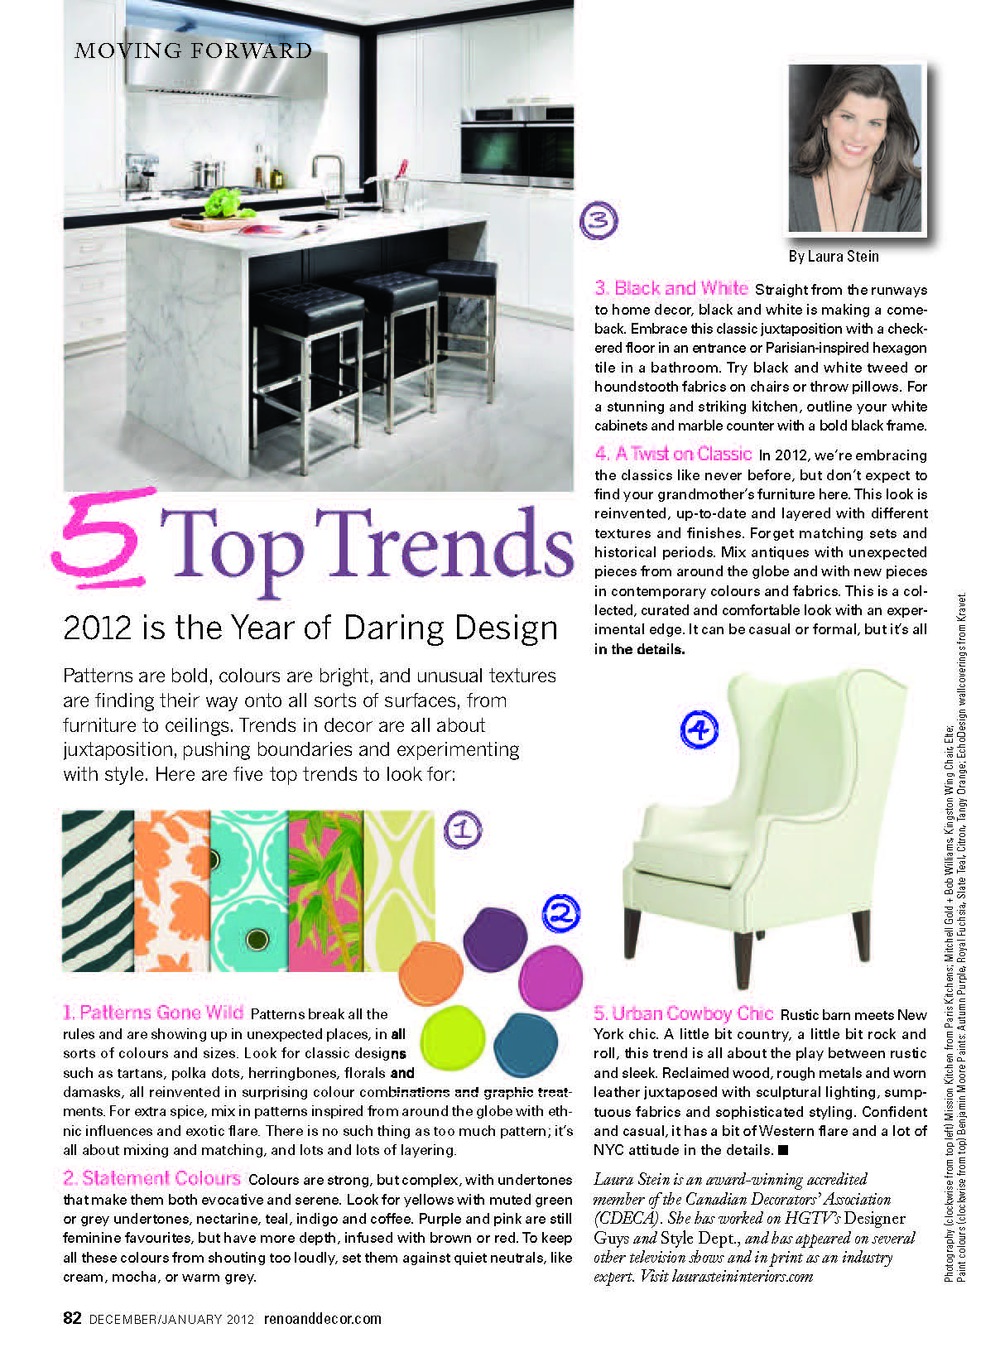 Laura Stein, Reno & Decor, Design Trends